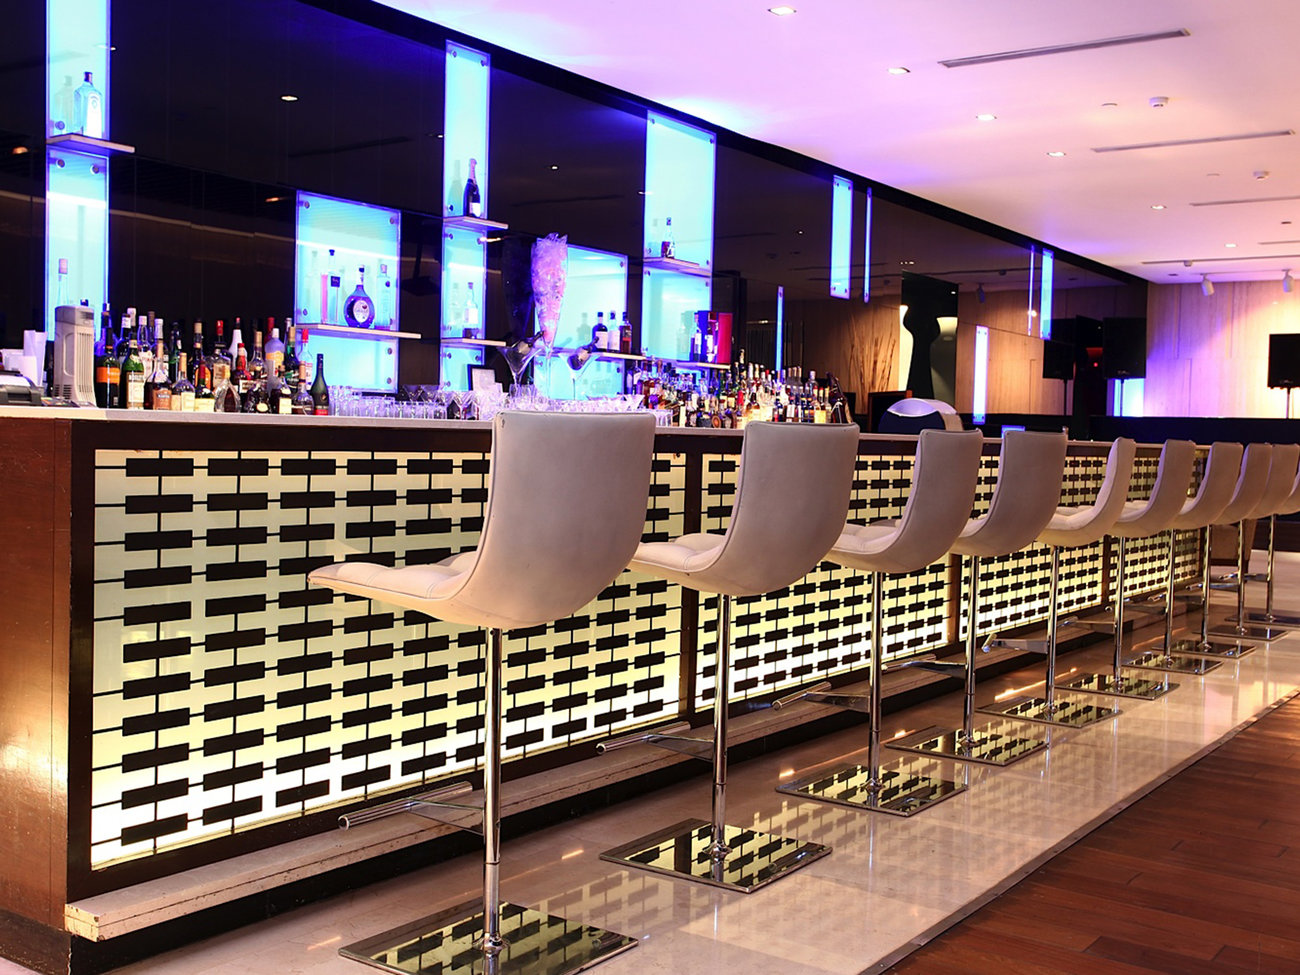 24/7 Bar at The Lalit Hotel in Delhi